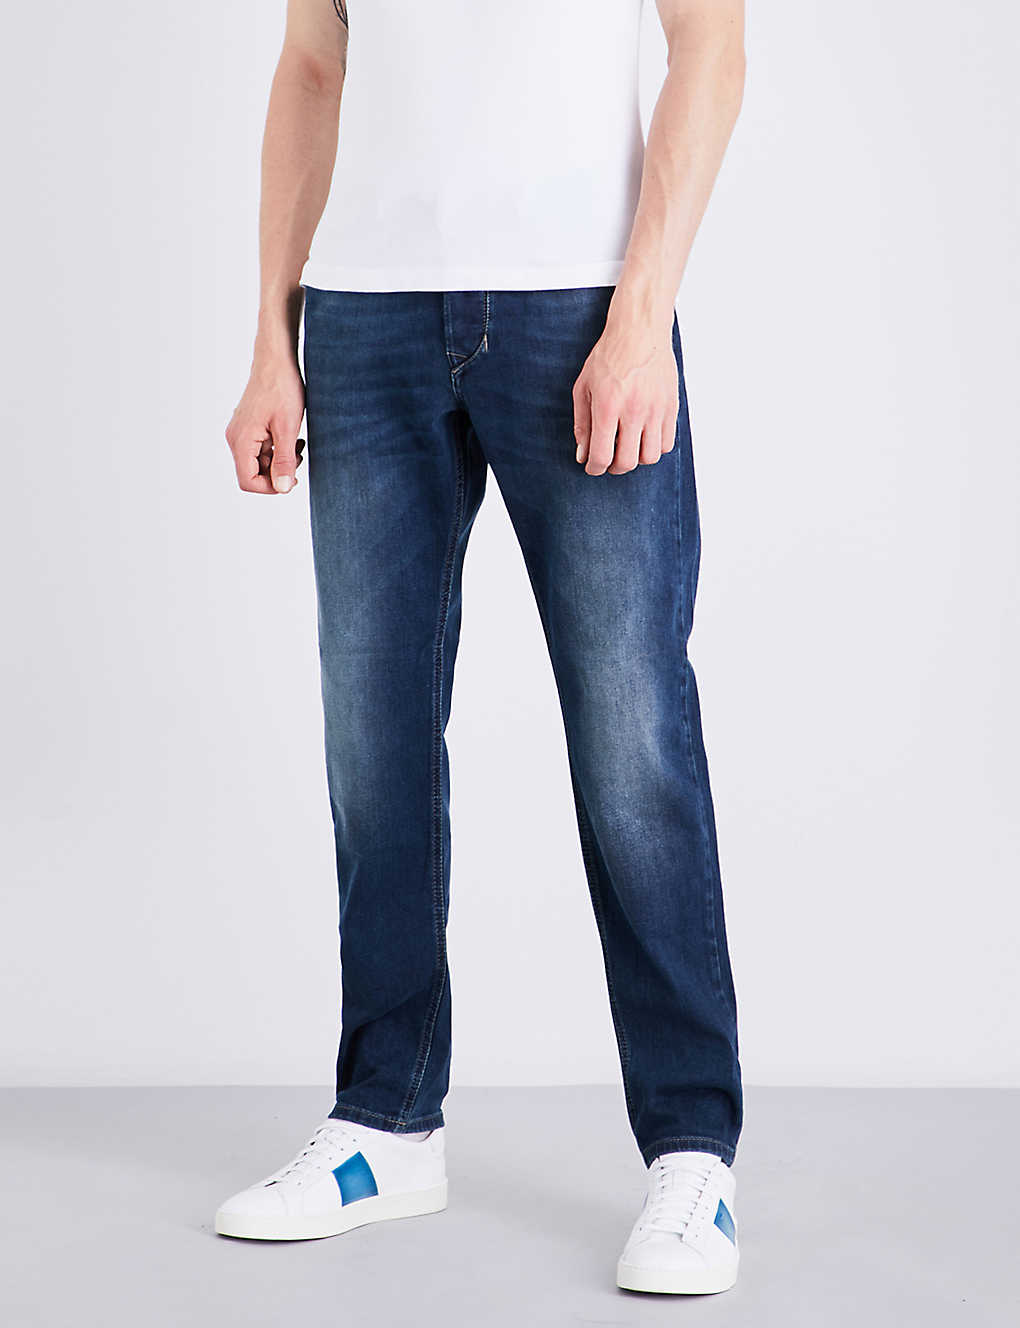 separation shoes 4f82d 6a1a5 Larkee-beex regular-fit tapered jeans